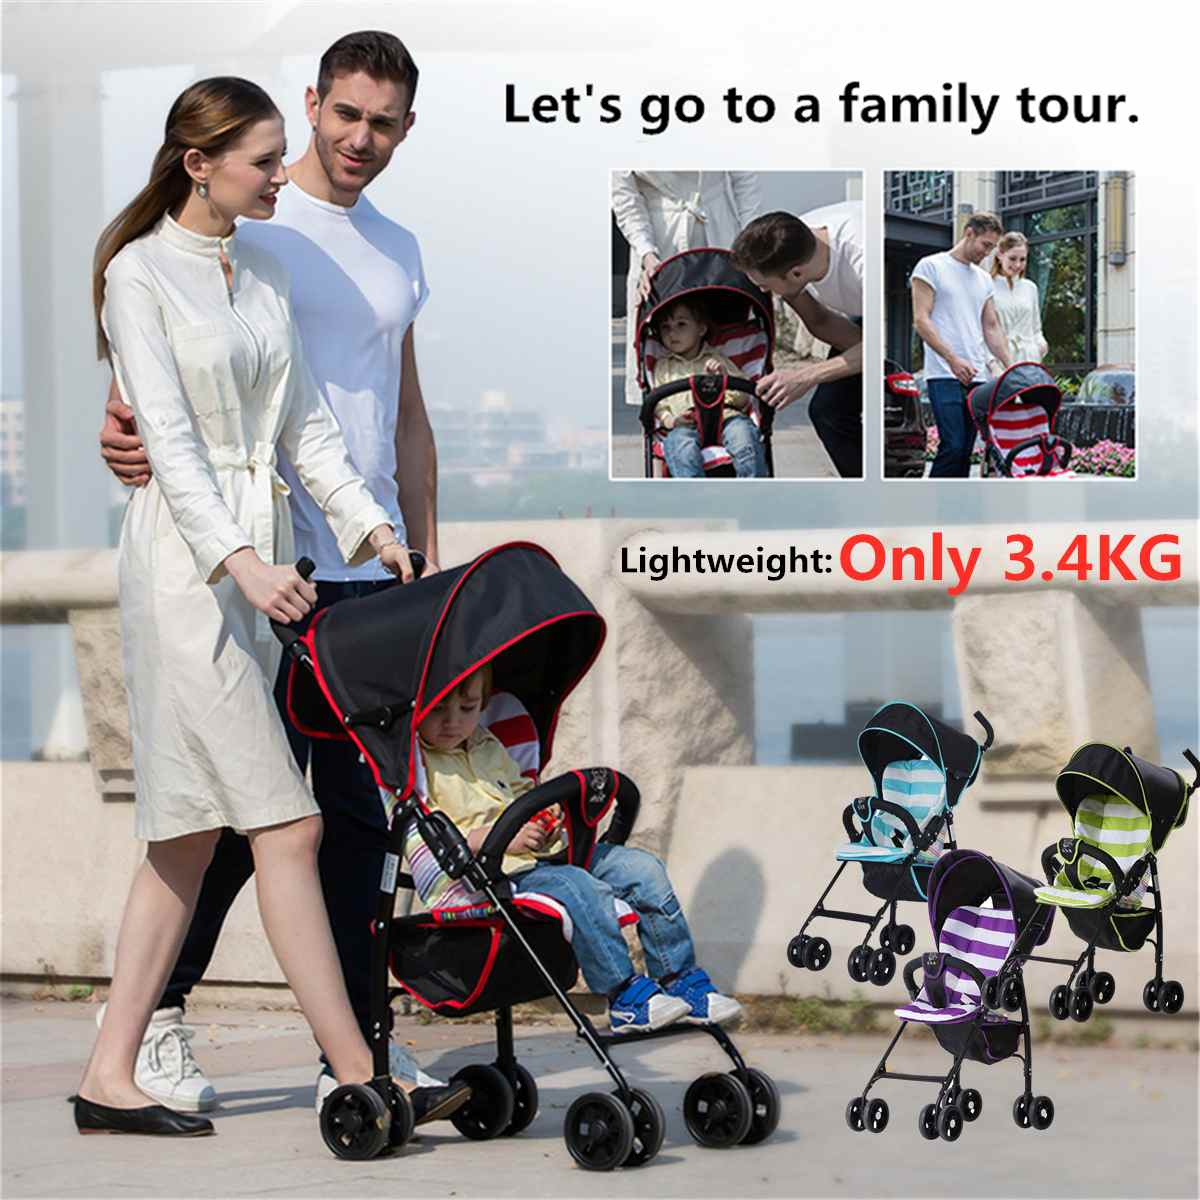 Foldable Lightweight Baby Stroller For 0-3 Years Old Kids 3.4Kg Carrying Capacity Outdoor Activity Kids Wheels Stroller ToddlerFoldable Lightweight Baby Stroller For 0-3 Years Old Kids 3.4Kg Carrying Capacity Outdoor Activity Kids Wheels Stroller Toddler